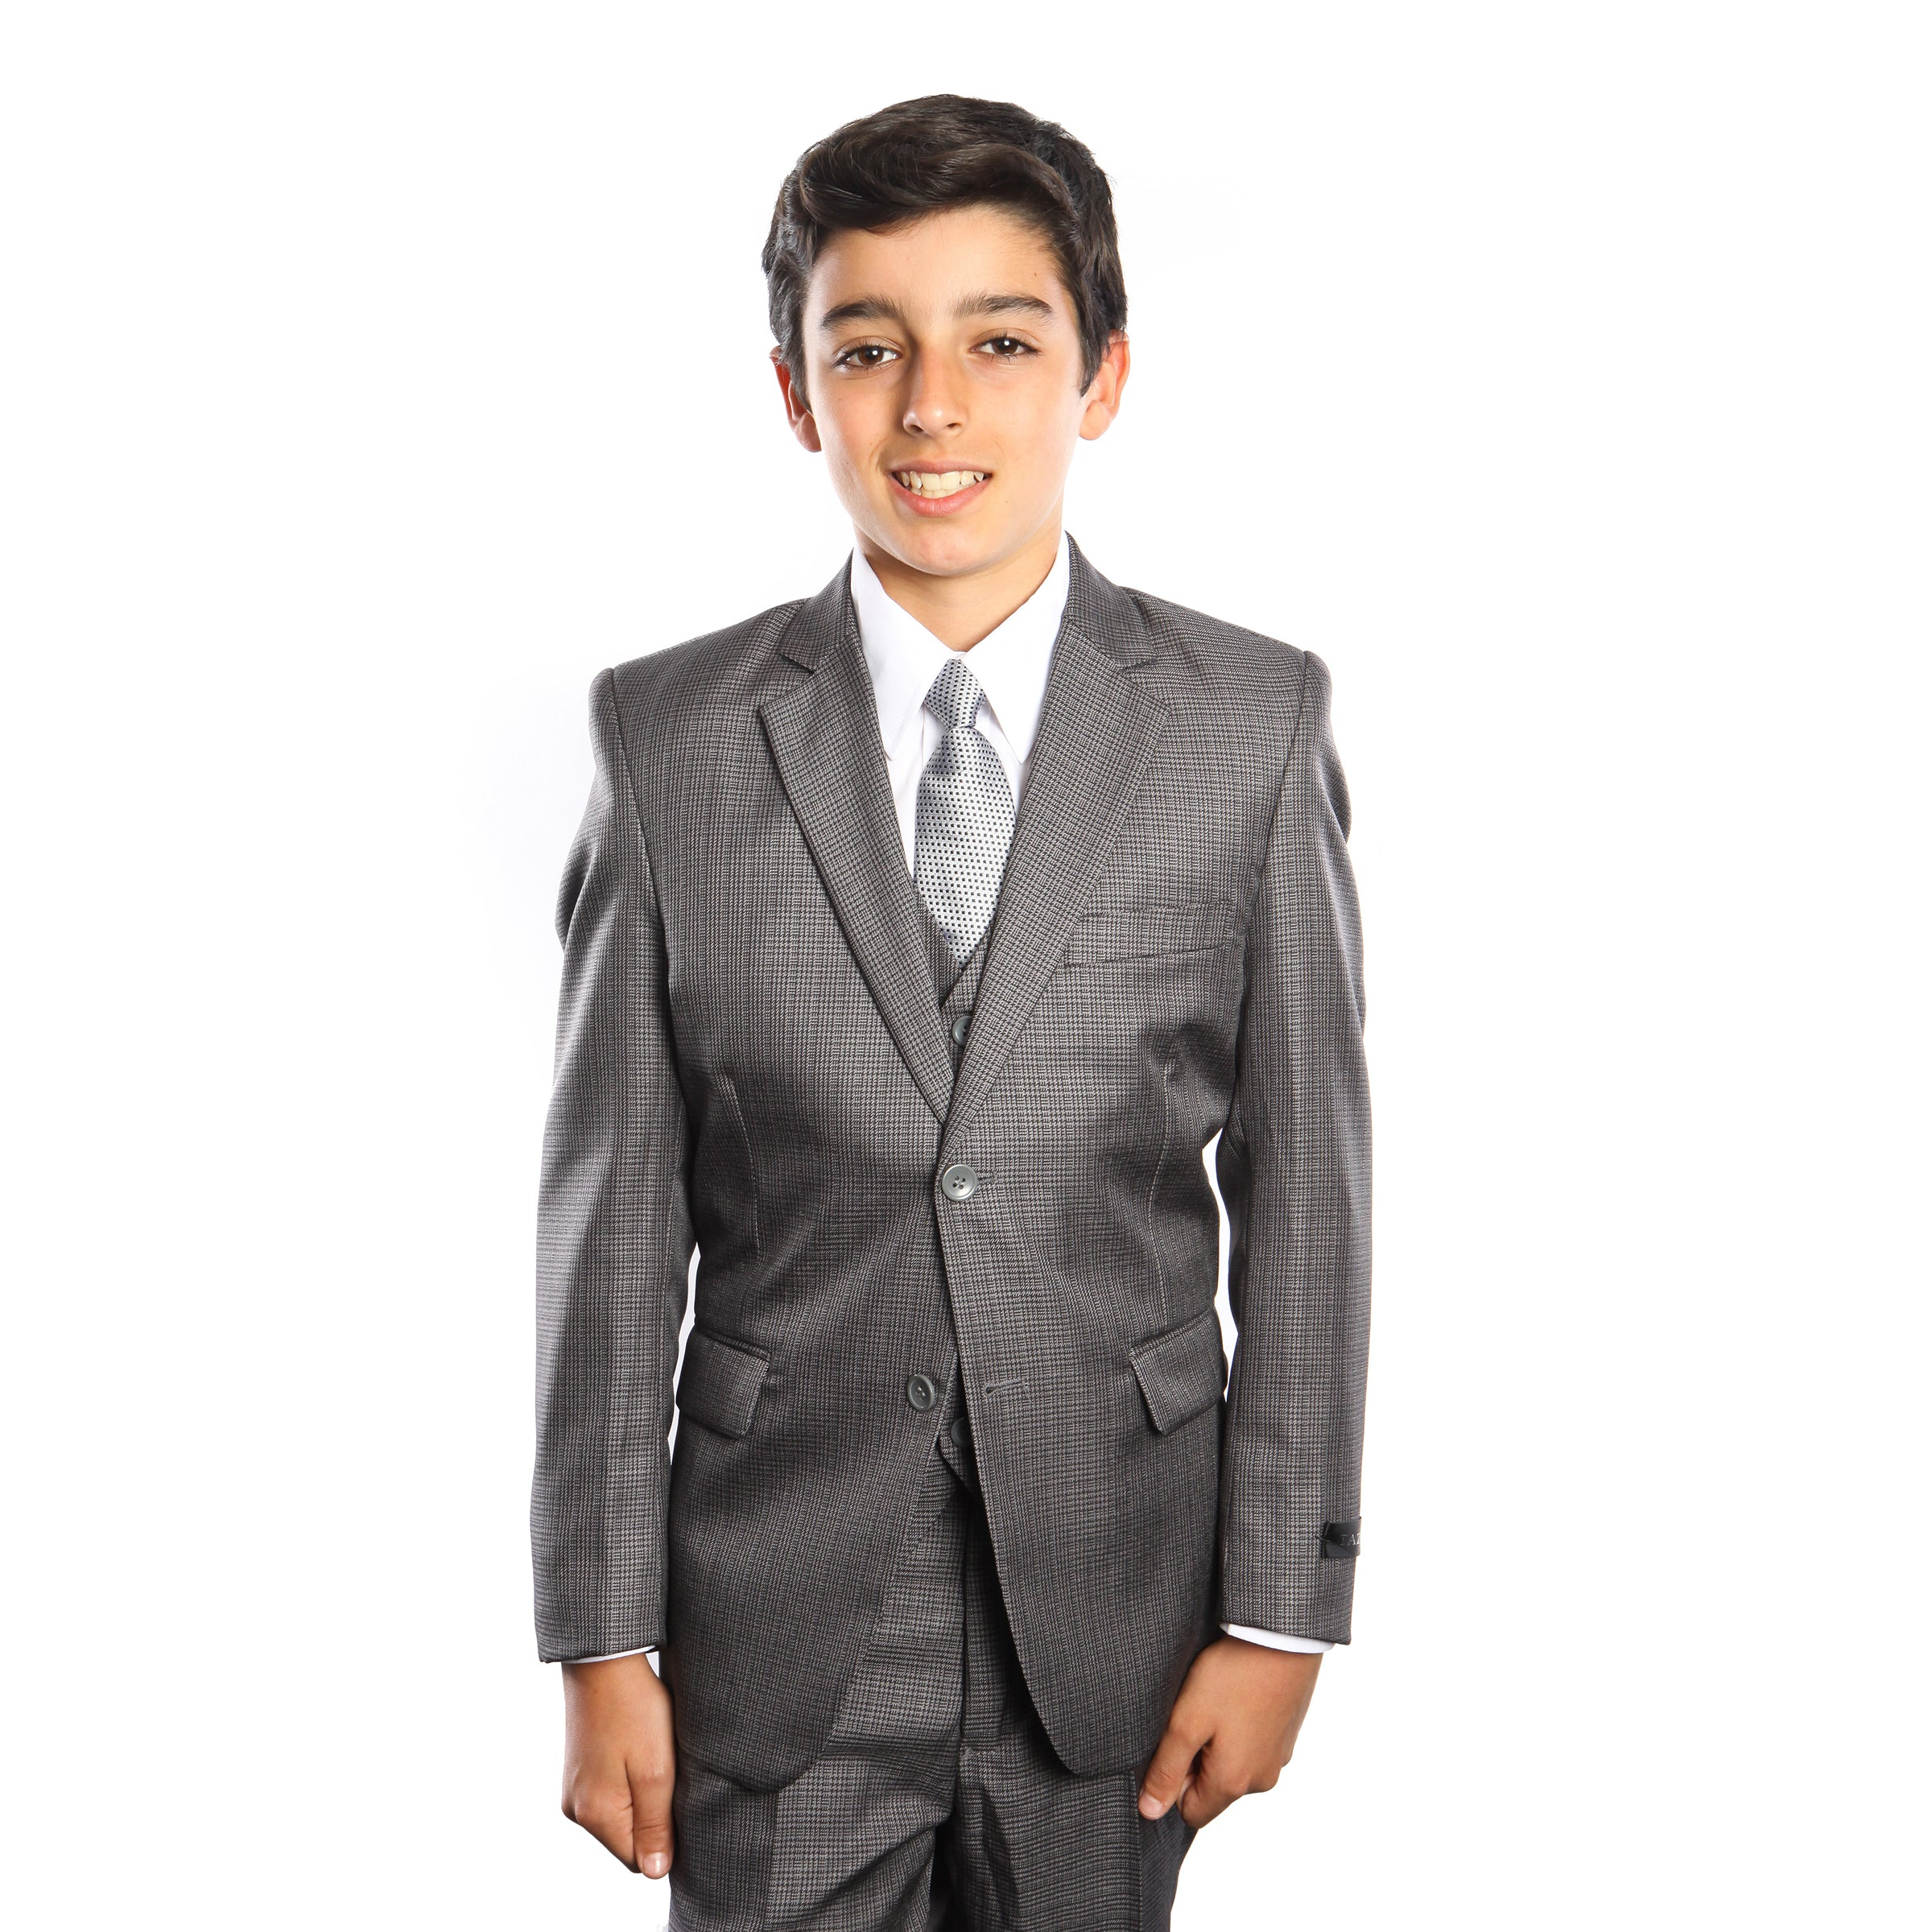 Grey Suit For Boys Formal Suits For All Ocassions B362-01